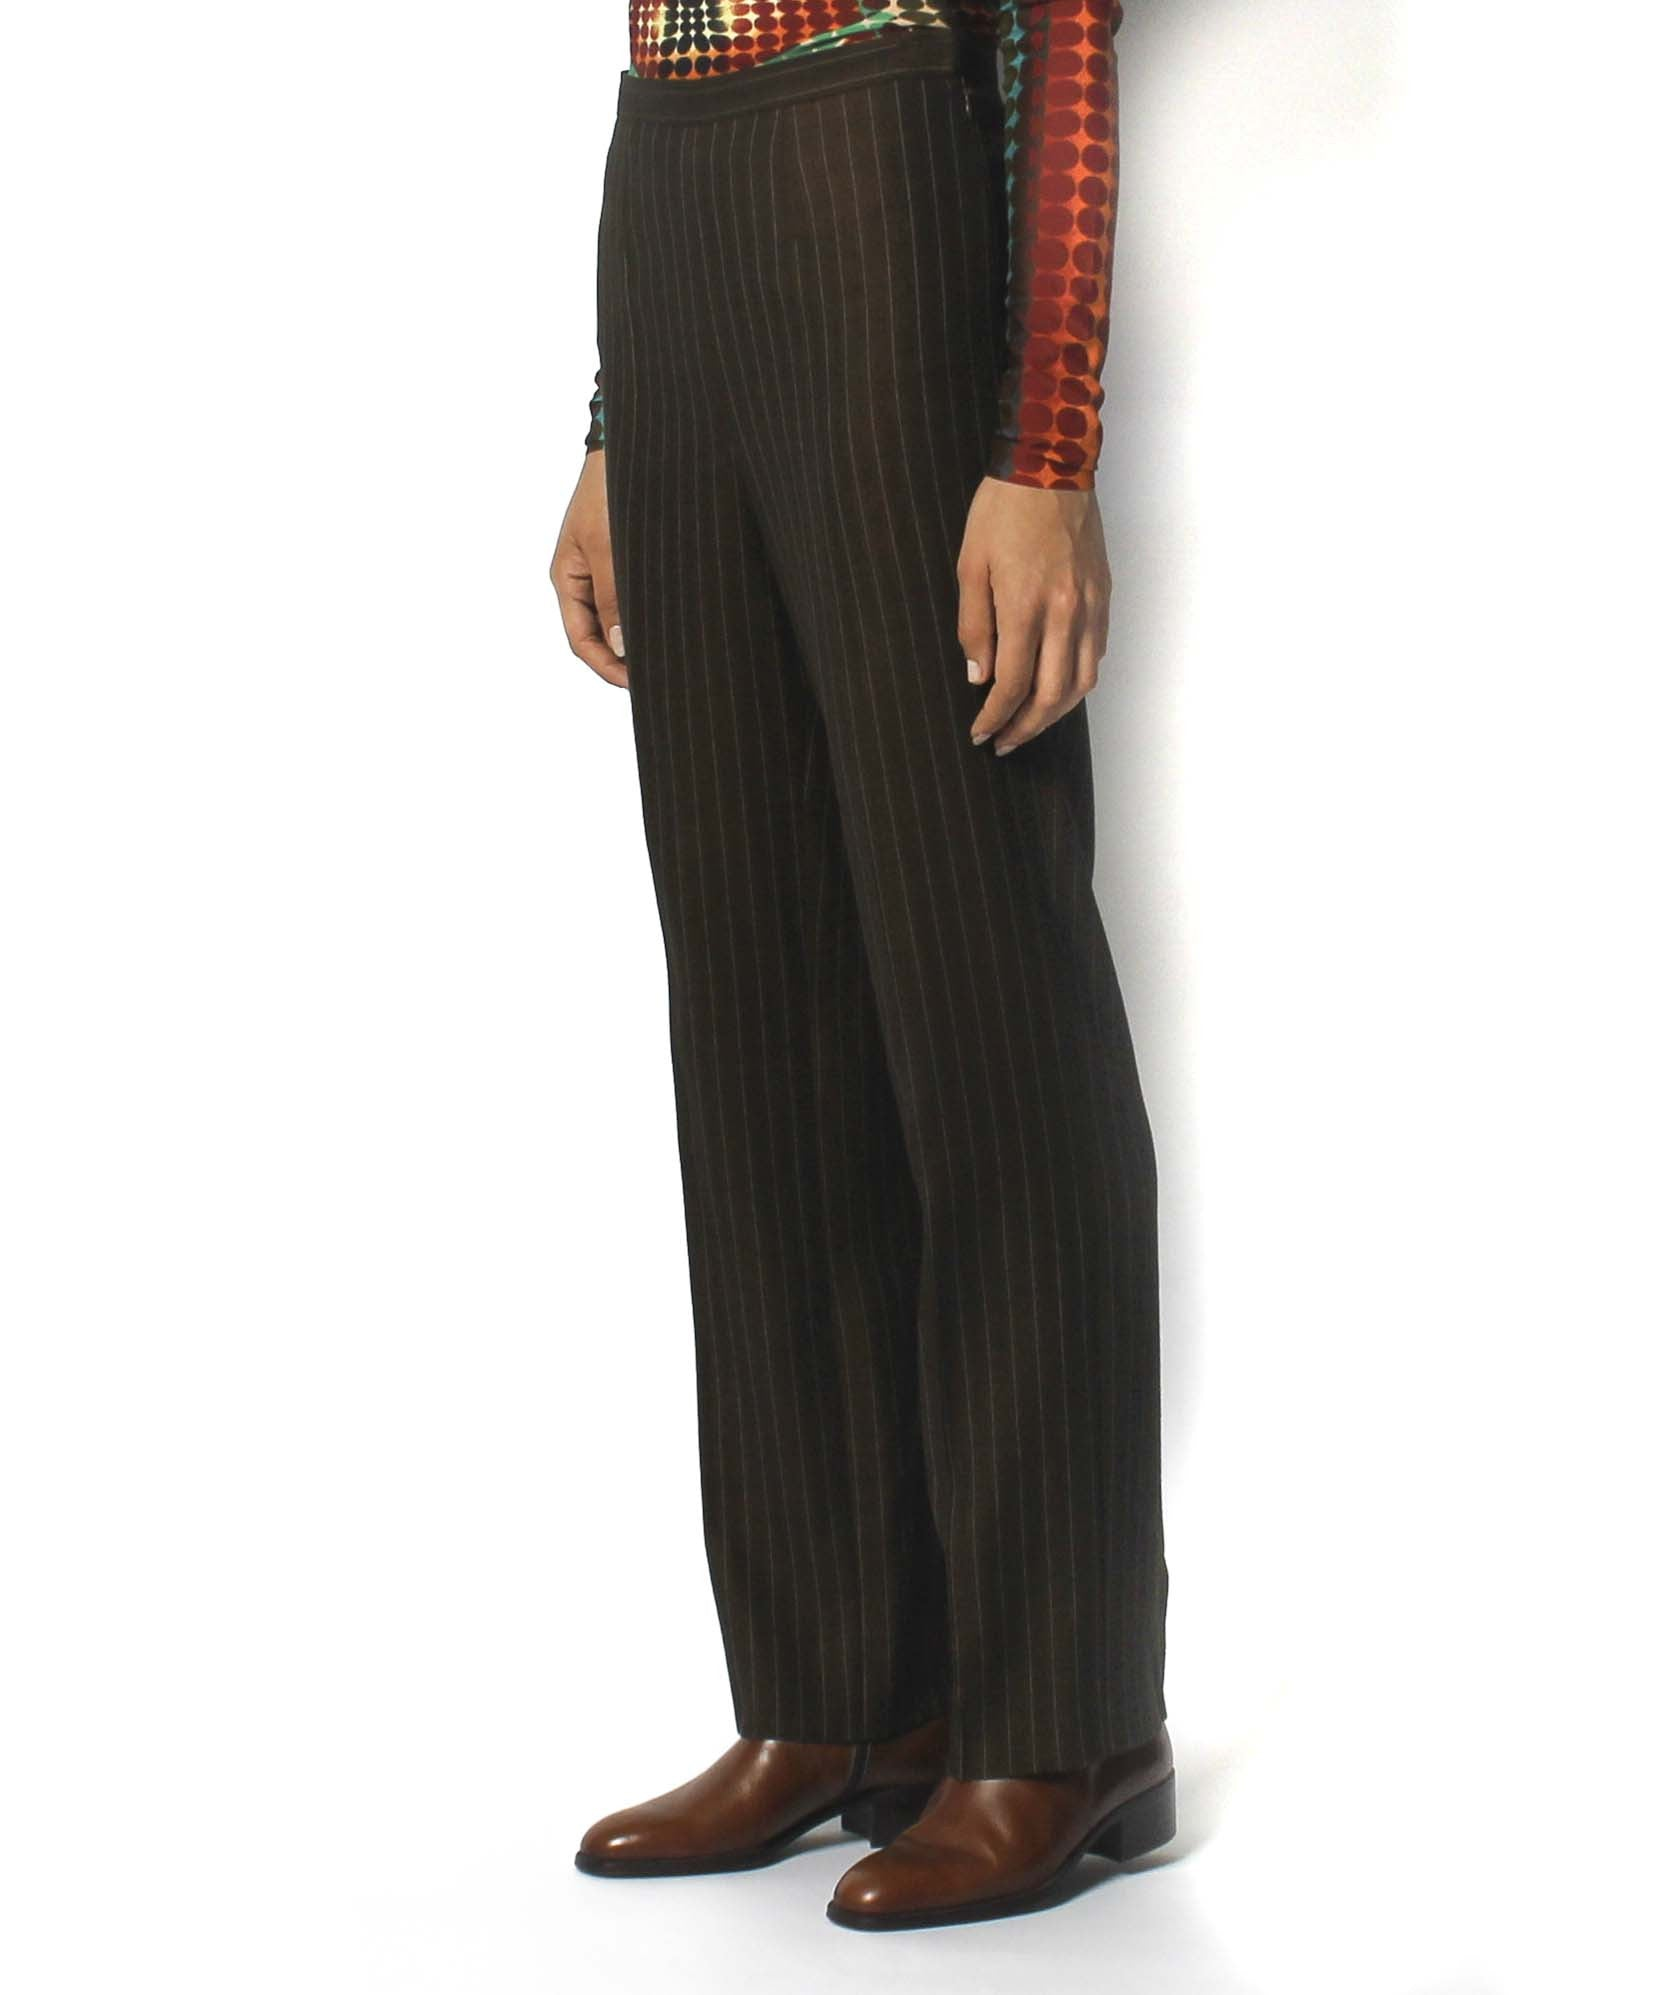 Jean Paul Gaultier 1990's Chocolate Brown Golden Pinstripe Wool Trousers - C.Madeleine's